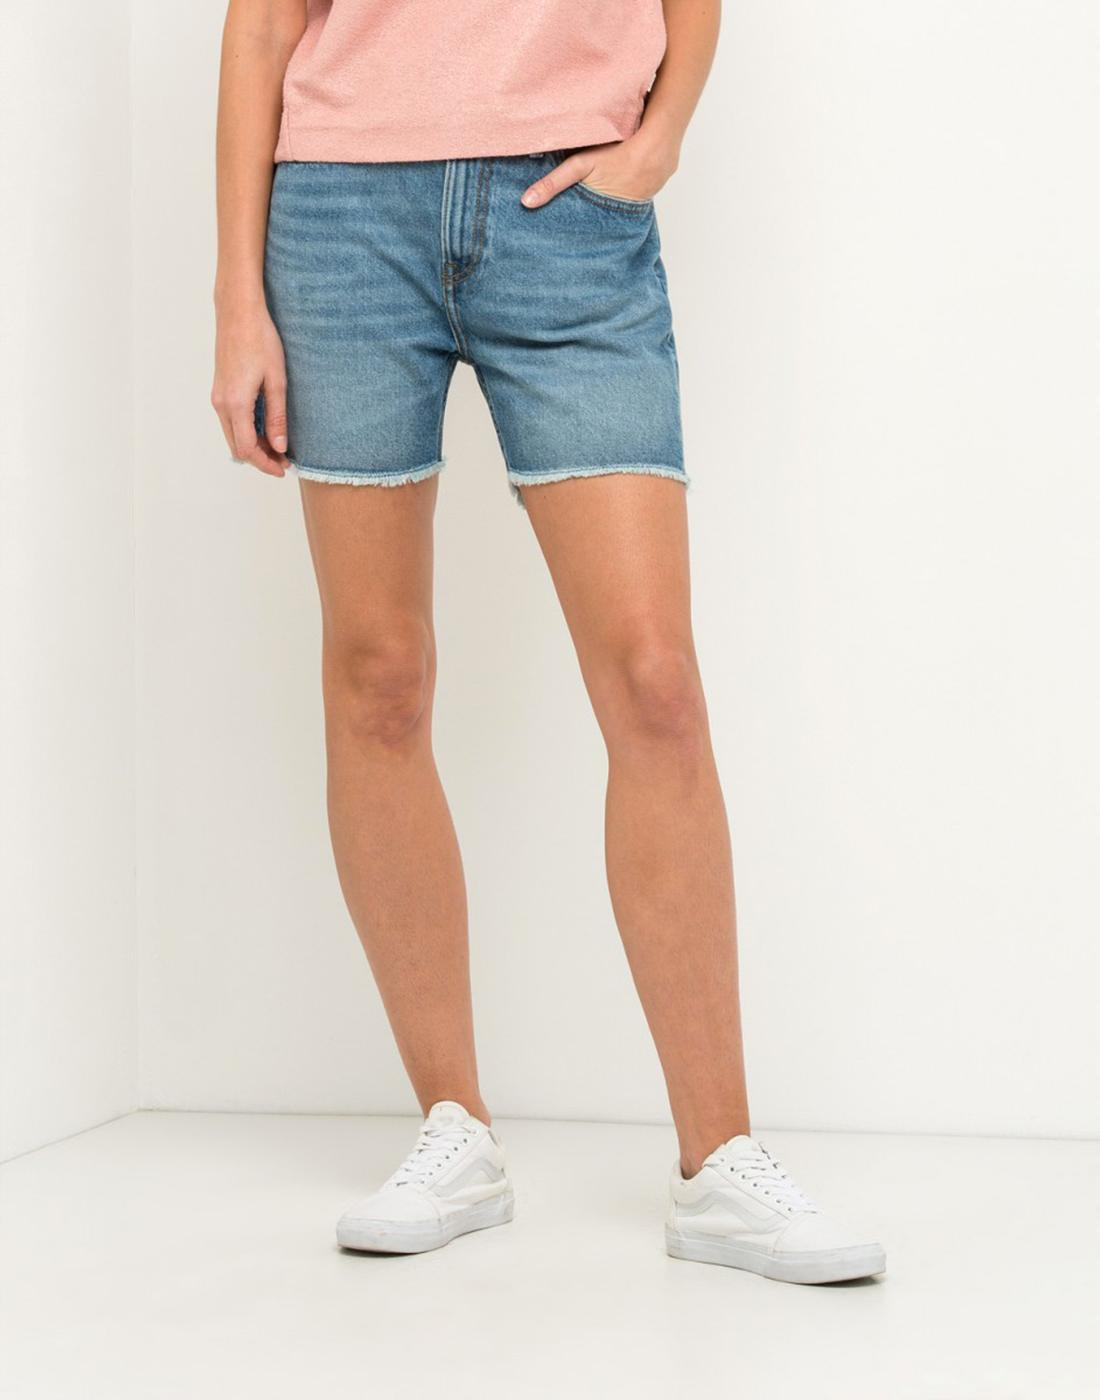 LEE JEANS Womens Retro 80s Denim Boyfriend Shorts